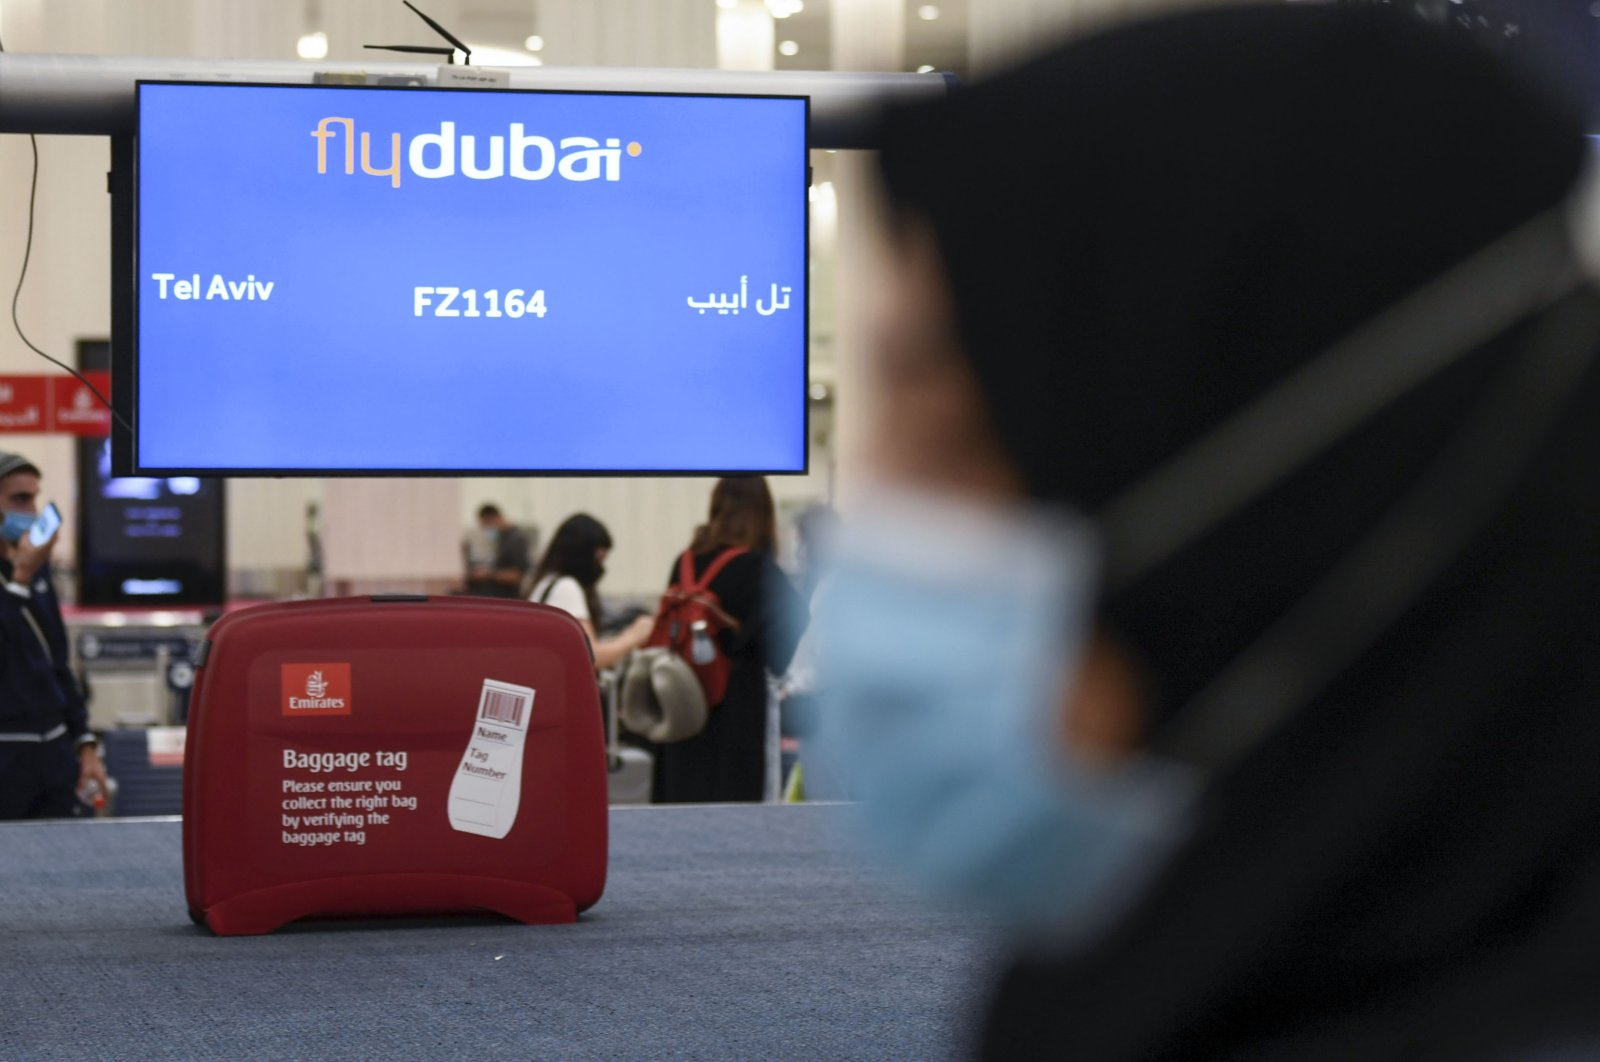 A woman walks past luggage pick-up for arrivals from Tel Aviv to the Dubai airport in the United Arab Emirates, on November 26, 2020, on the first scheduled commercial flight operated by budget airline flydubai, following the normalisation of ties between the UAE and Israel. (AFP Photo)